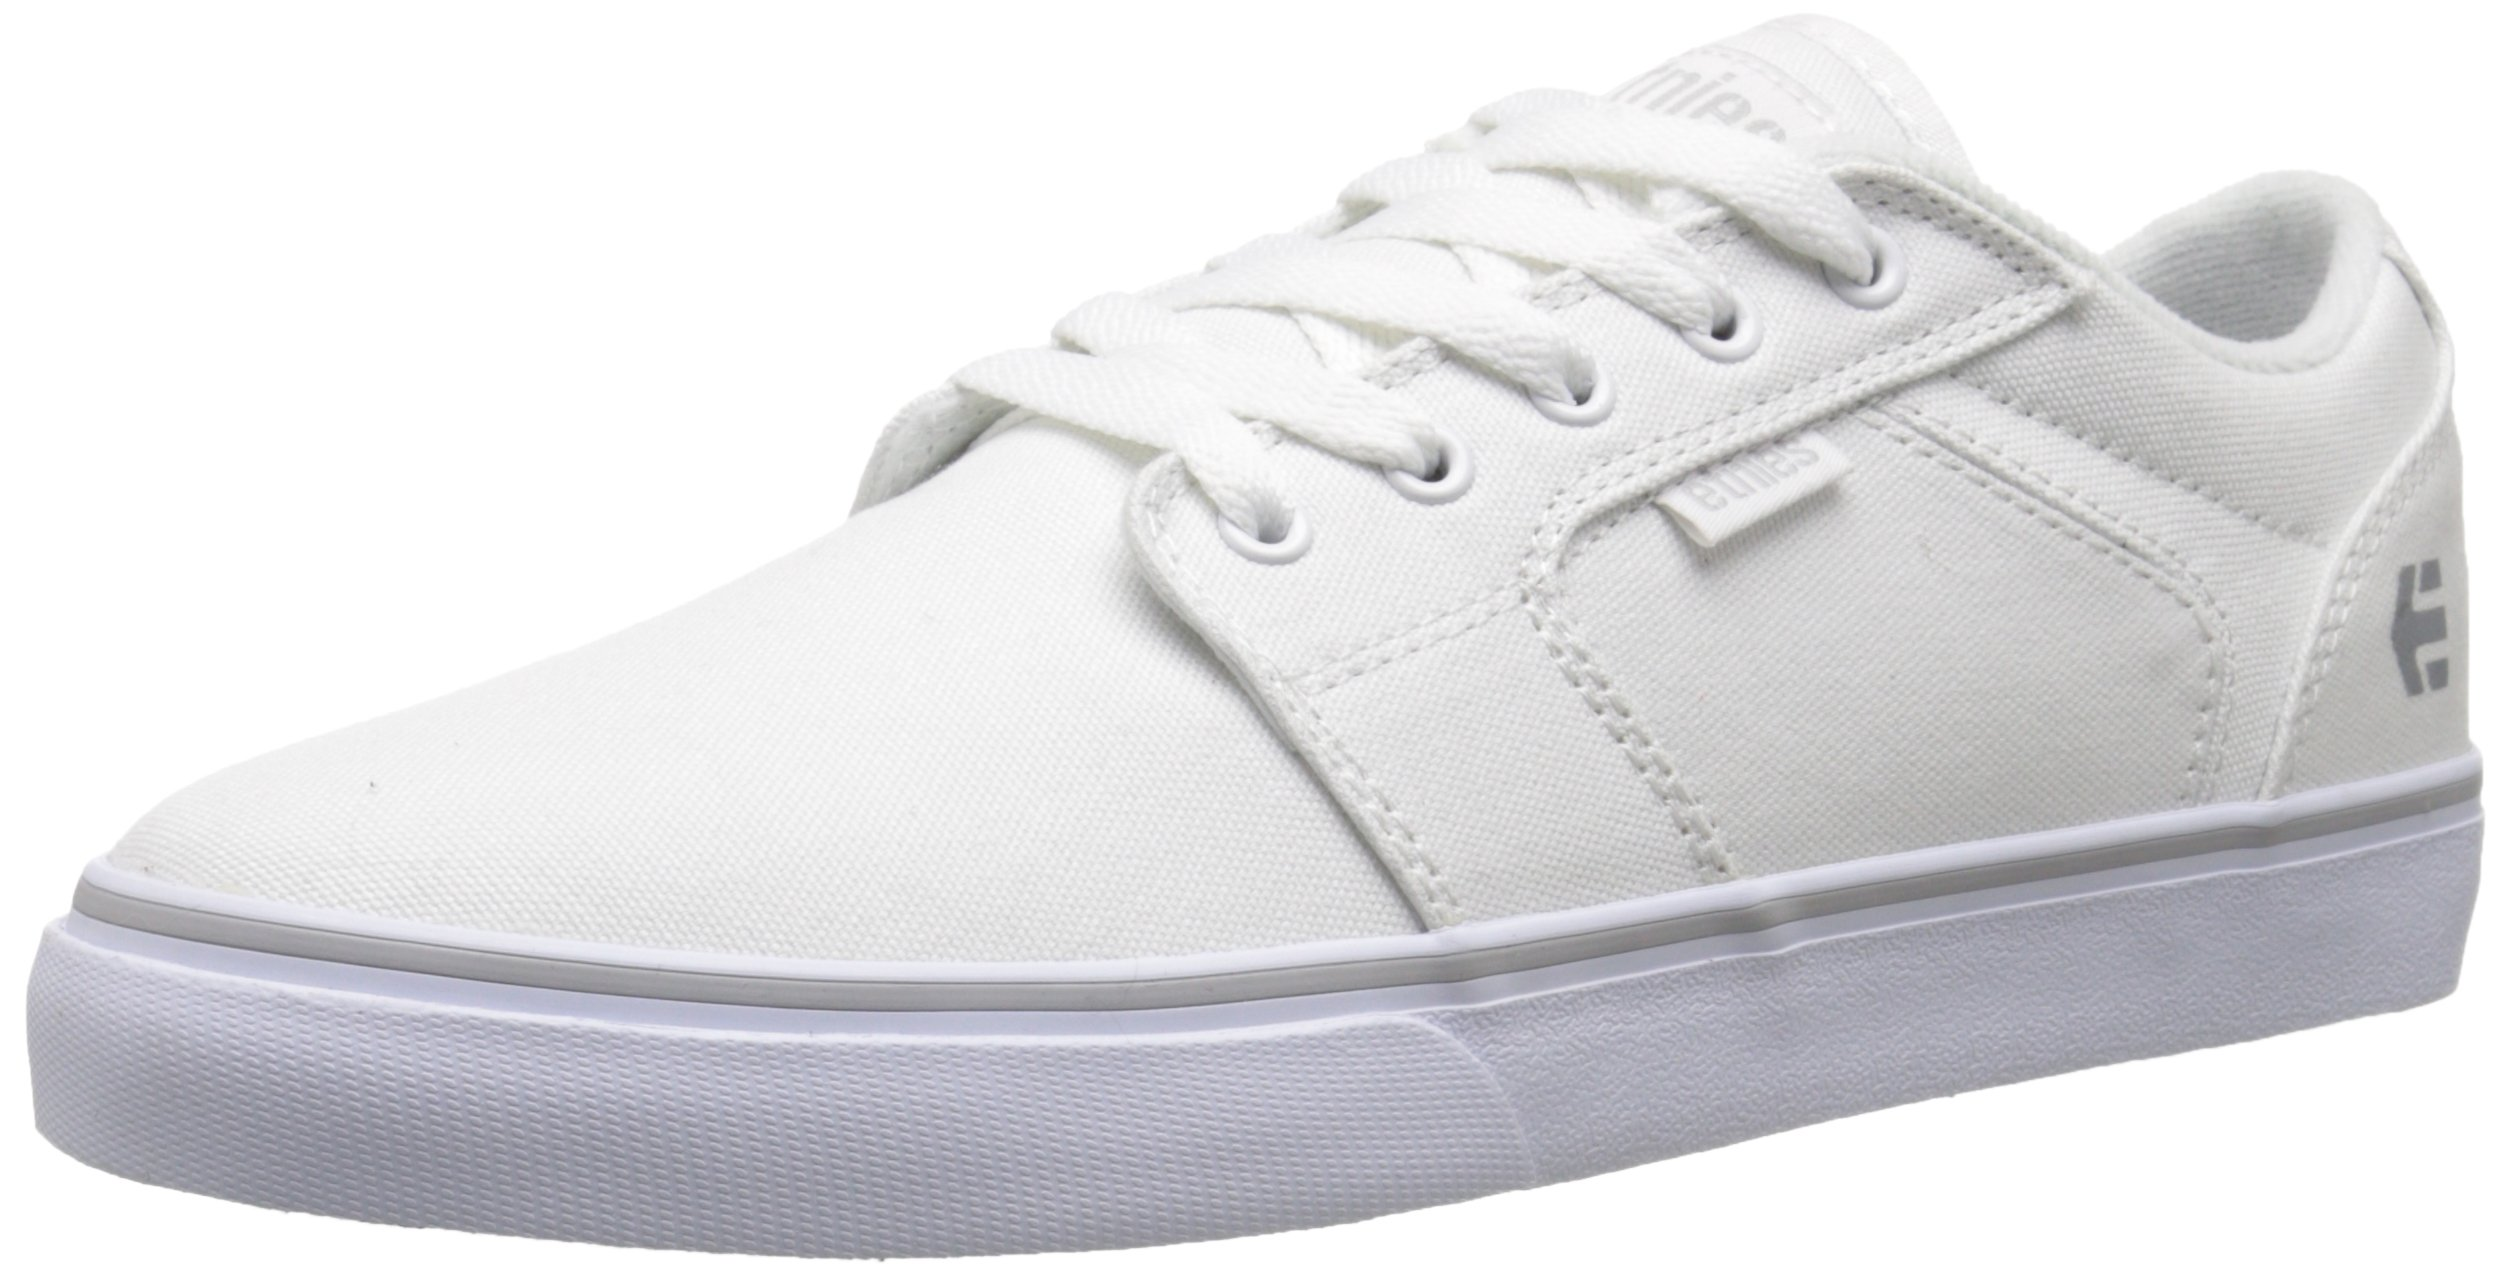 Etnies Women's Barge LS Skate Shoe, White, 7 M US